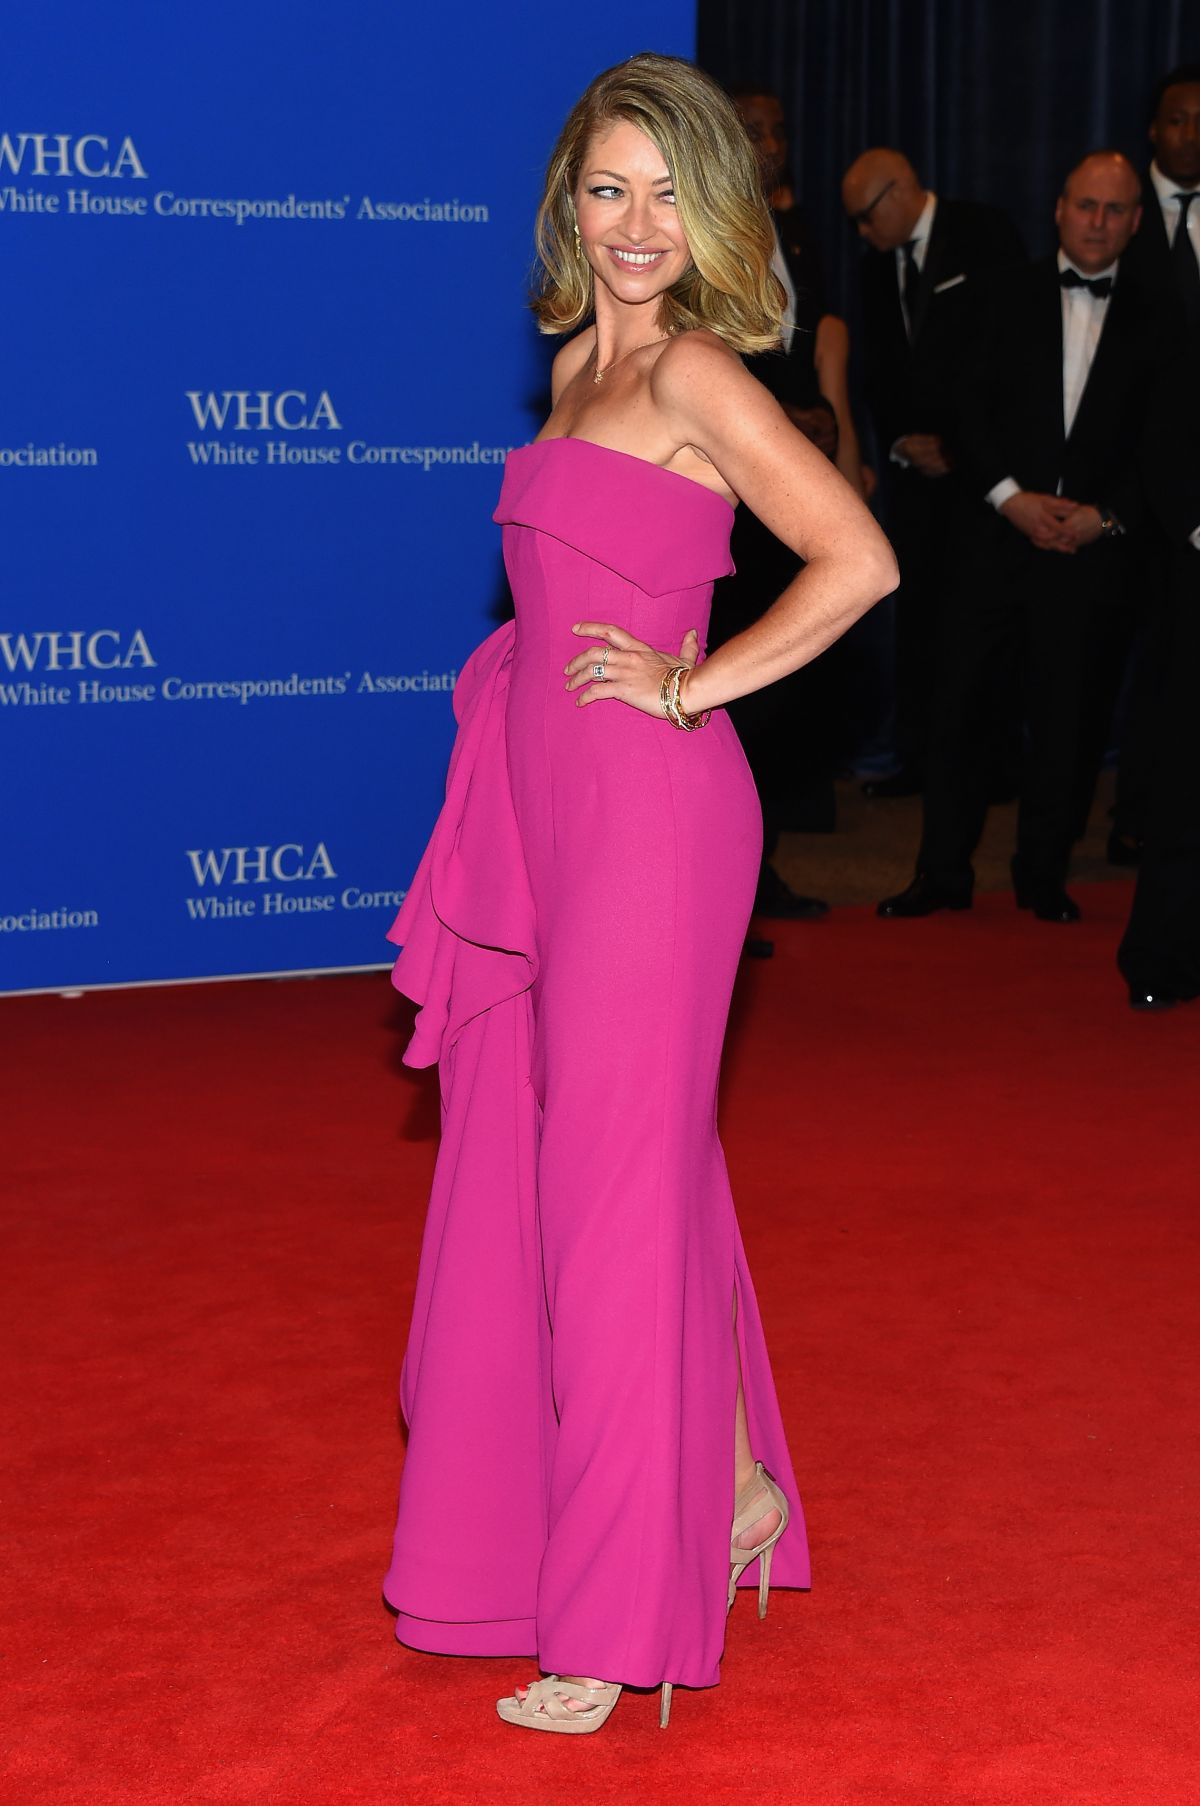 REBECCA GAYHEART at White House Correspondents Association Dinner in Washington